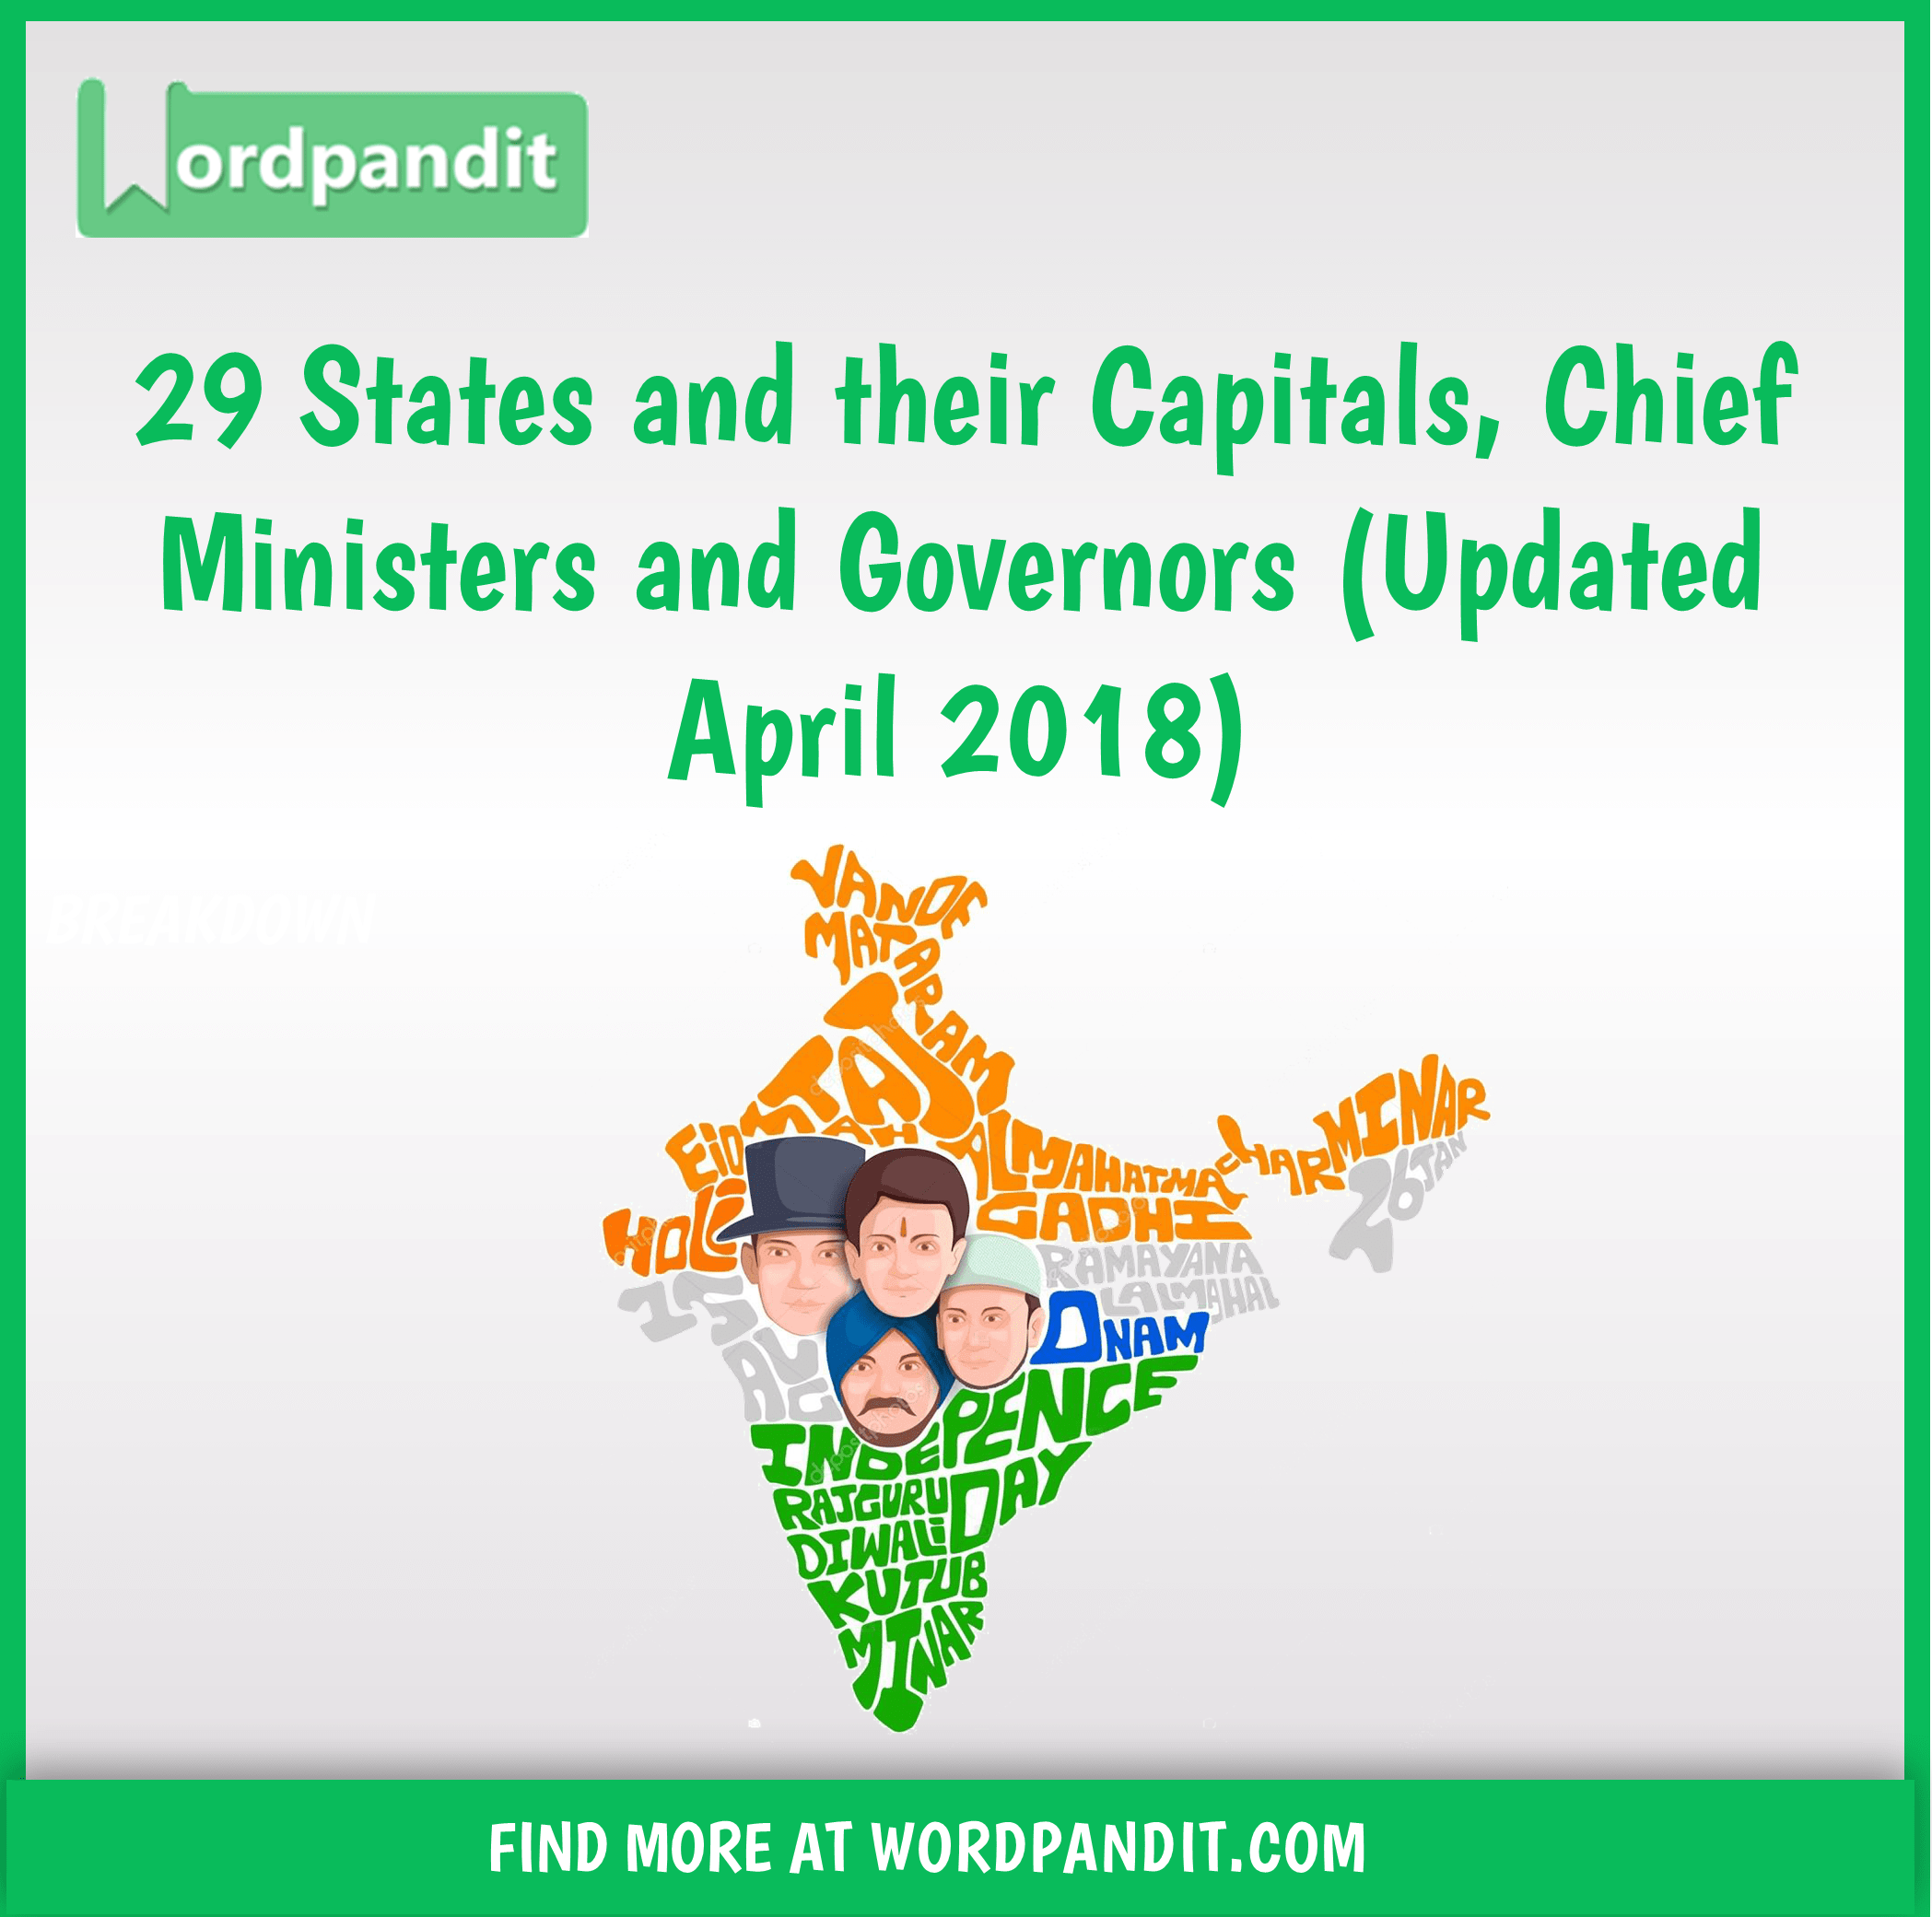 28 States and their Capitals, Chief Ministers and